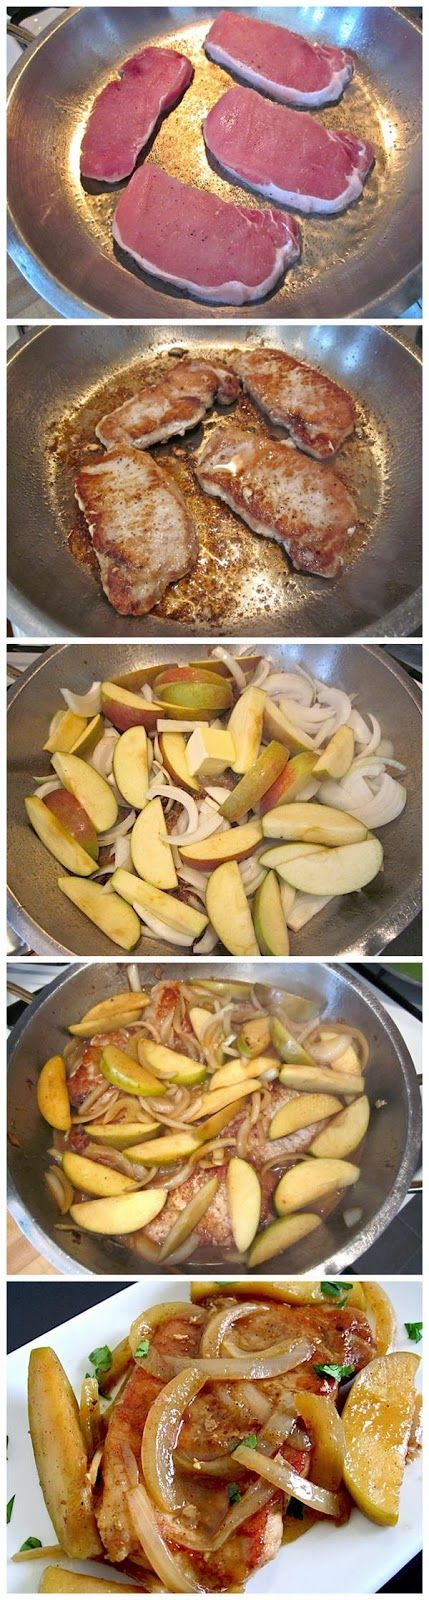 Apple Spice Porkchops by budgetbytes via bestfoodcloud #Porkchops #Apple